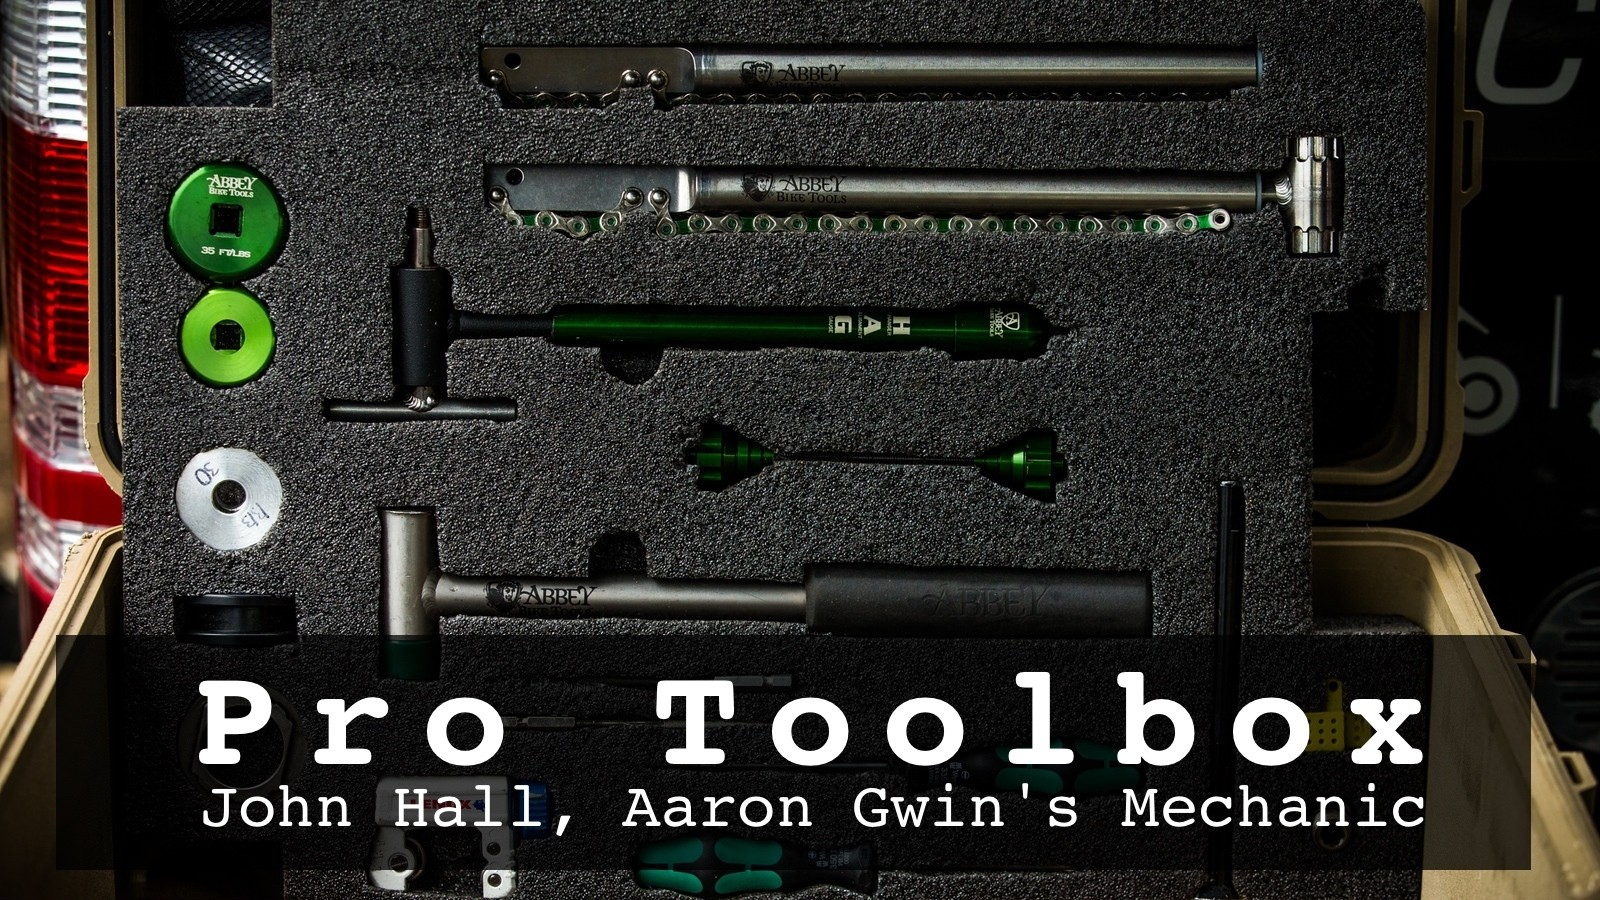 Pro Toolbox Check - John Hall's Treasure Chest